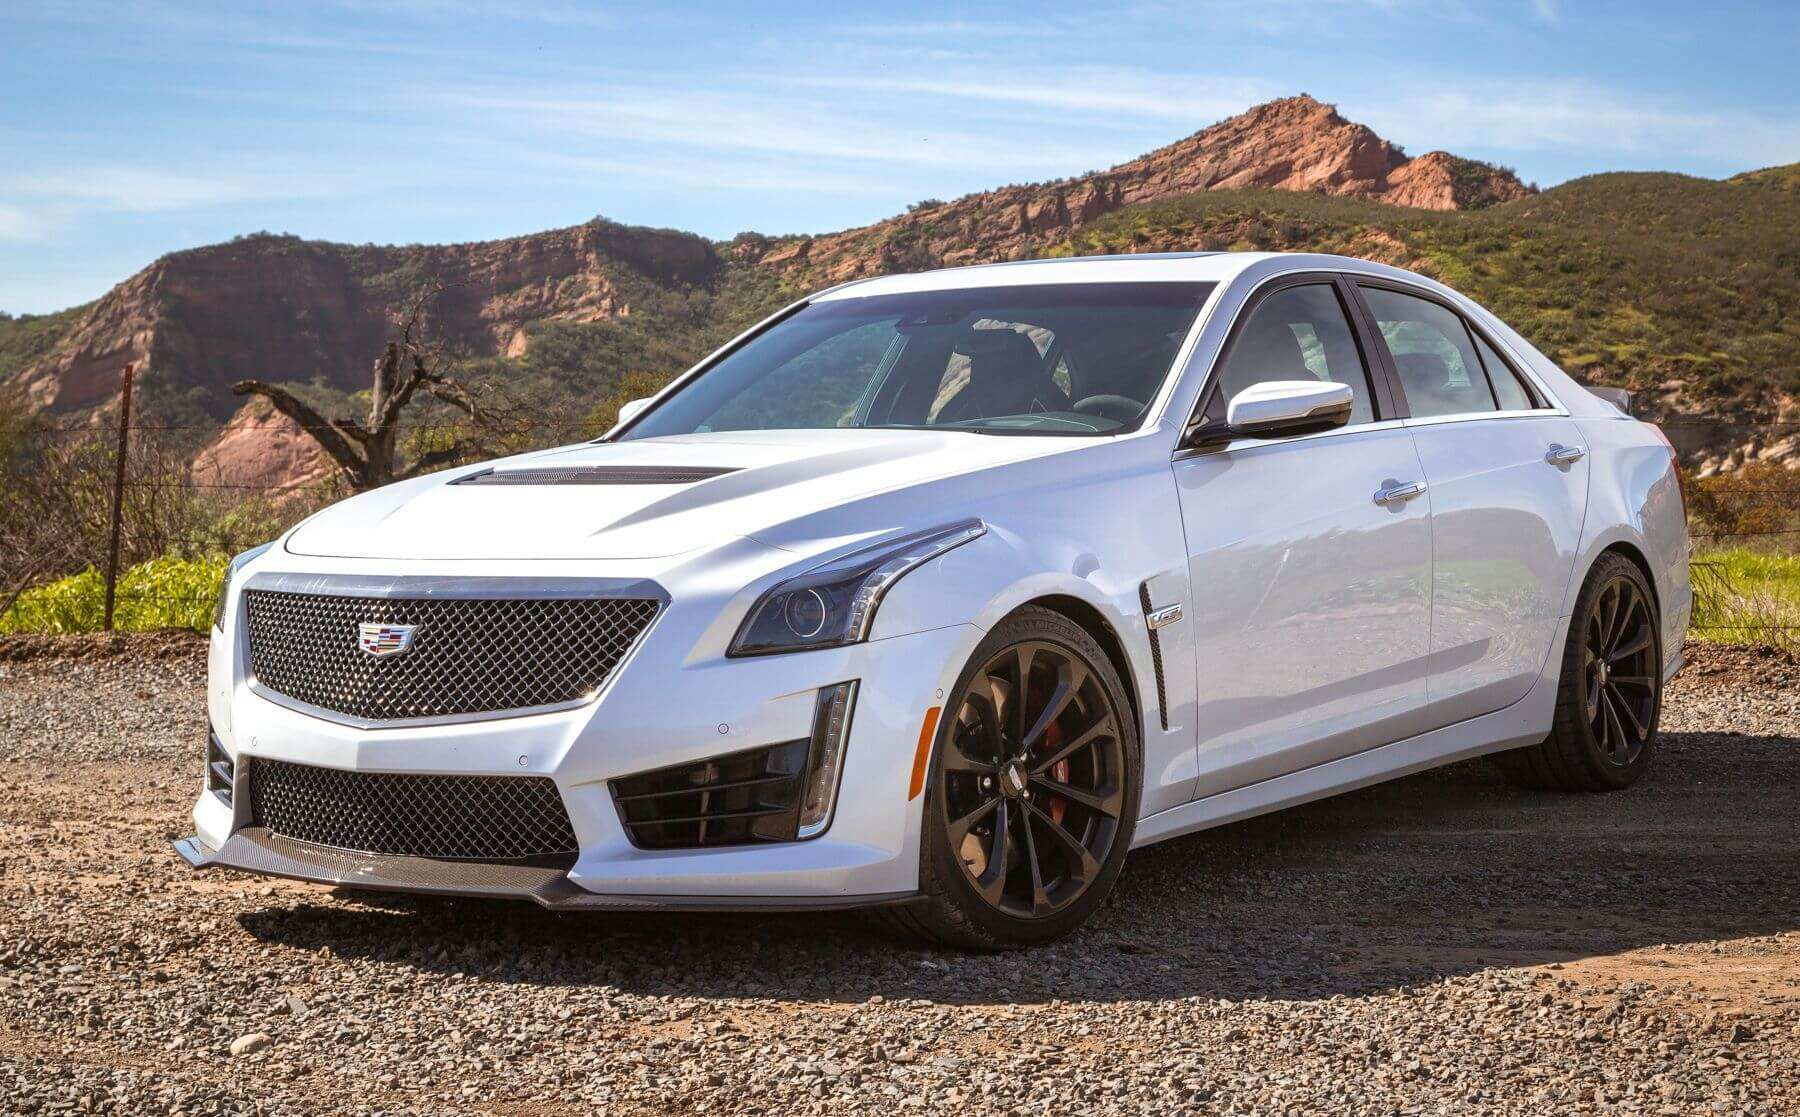 32 Gallery of 2019 Cts V Coupe Specs for 2019 Cts V Coupe